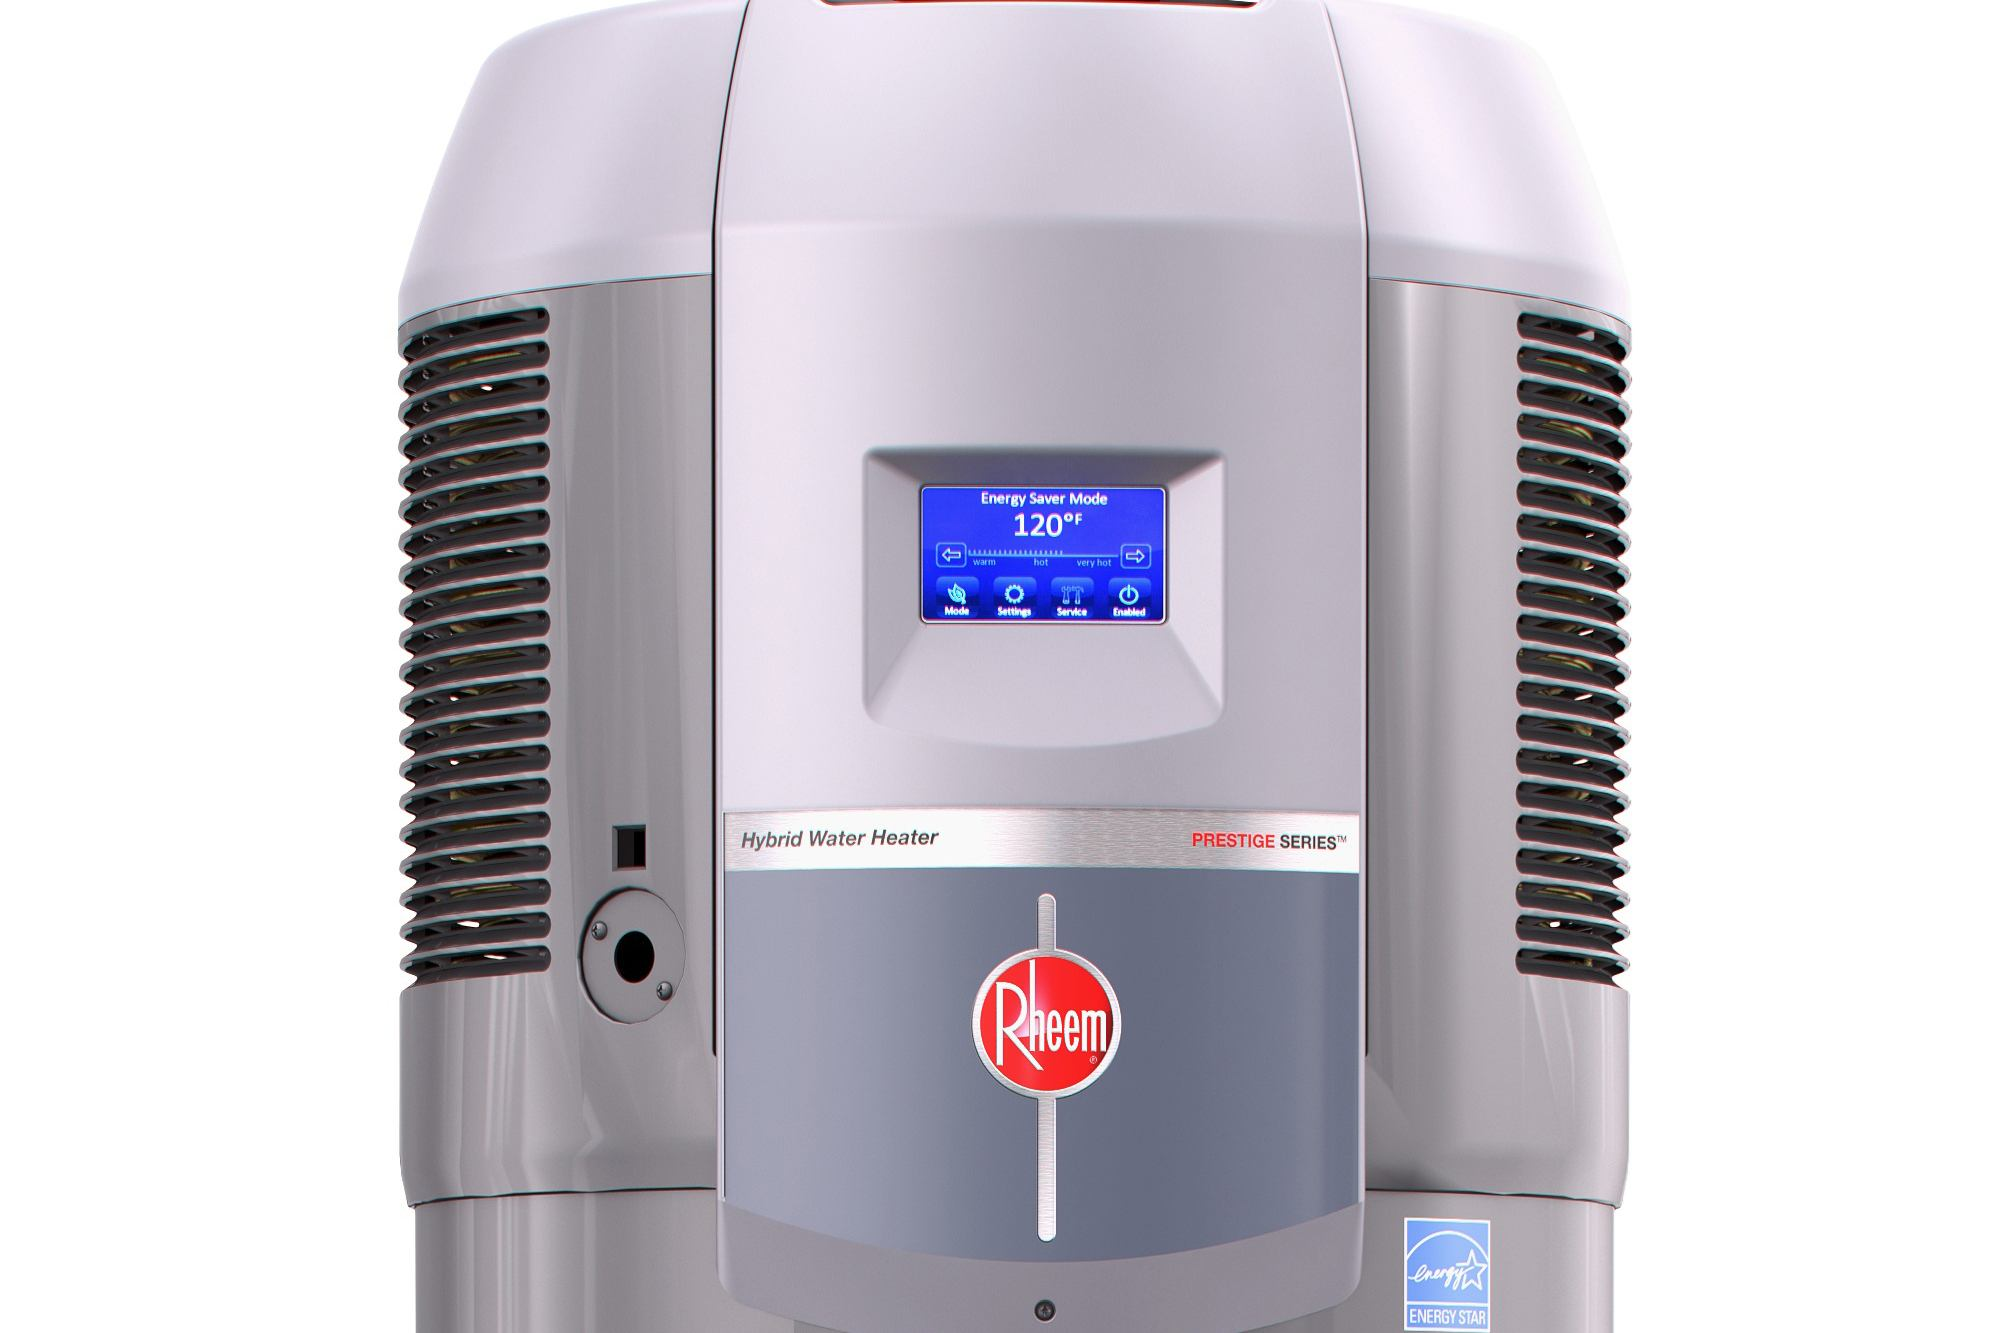 Rheem Condensing Water Heater | Builder Magazine | Products, Energy  Efficiency, Green Products, Rheem Mfg.